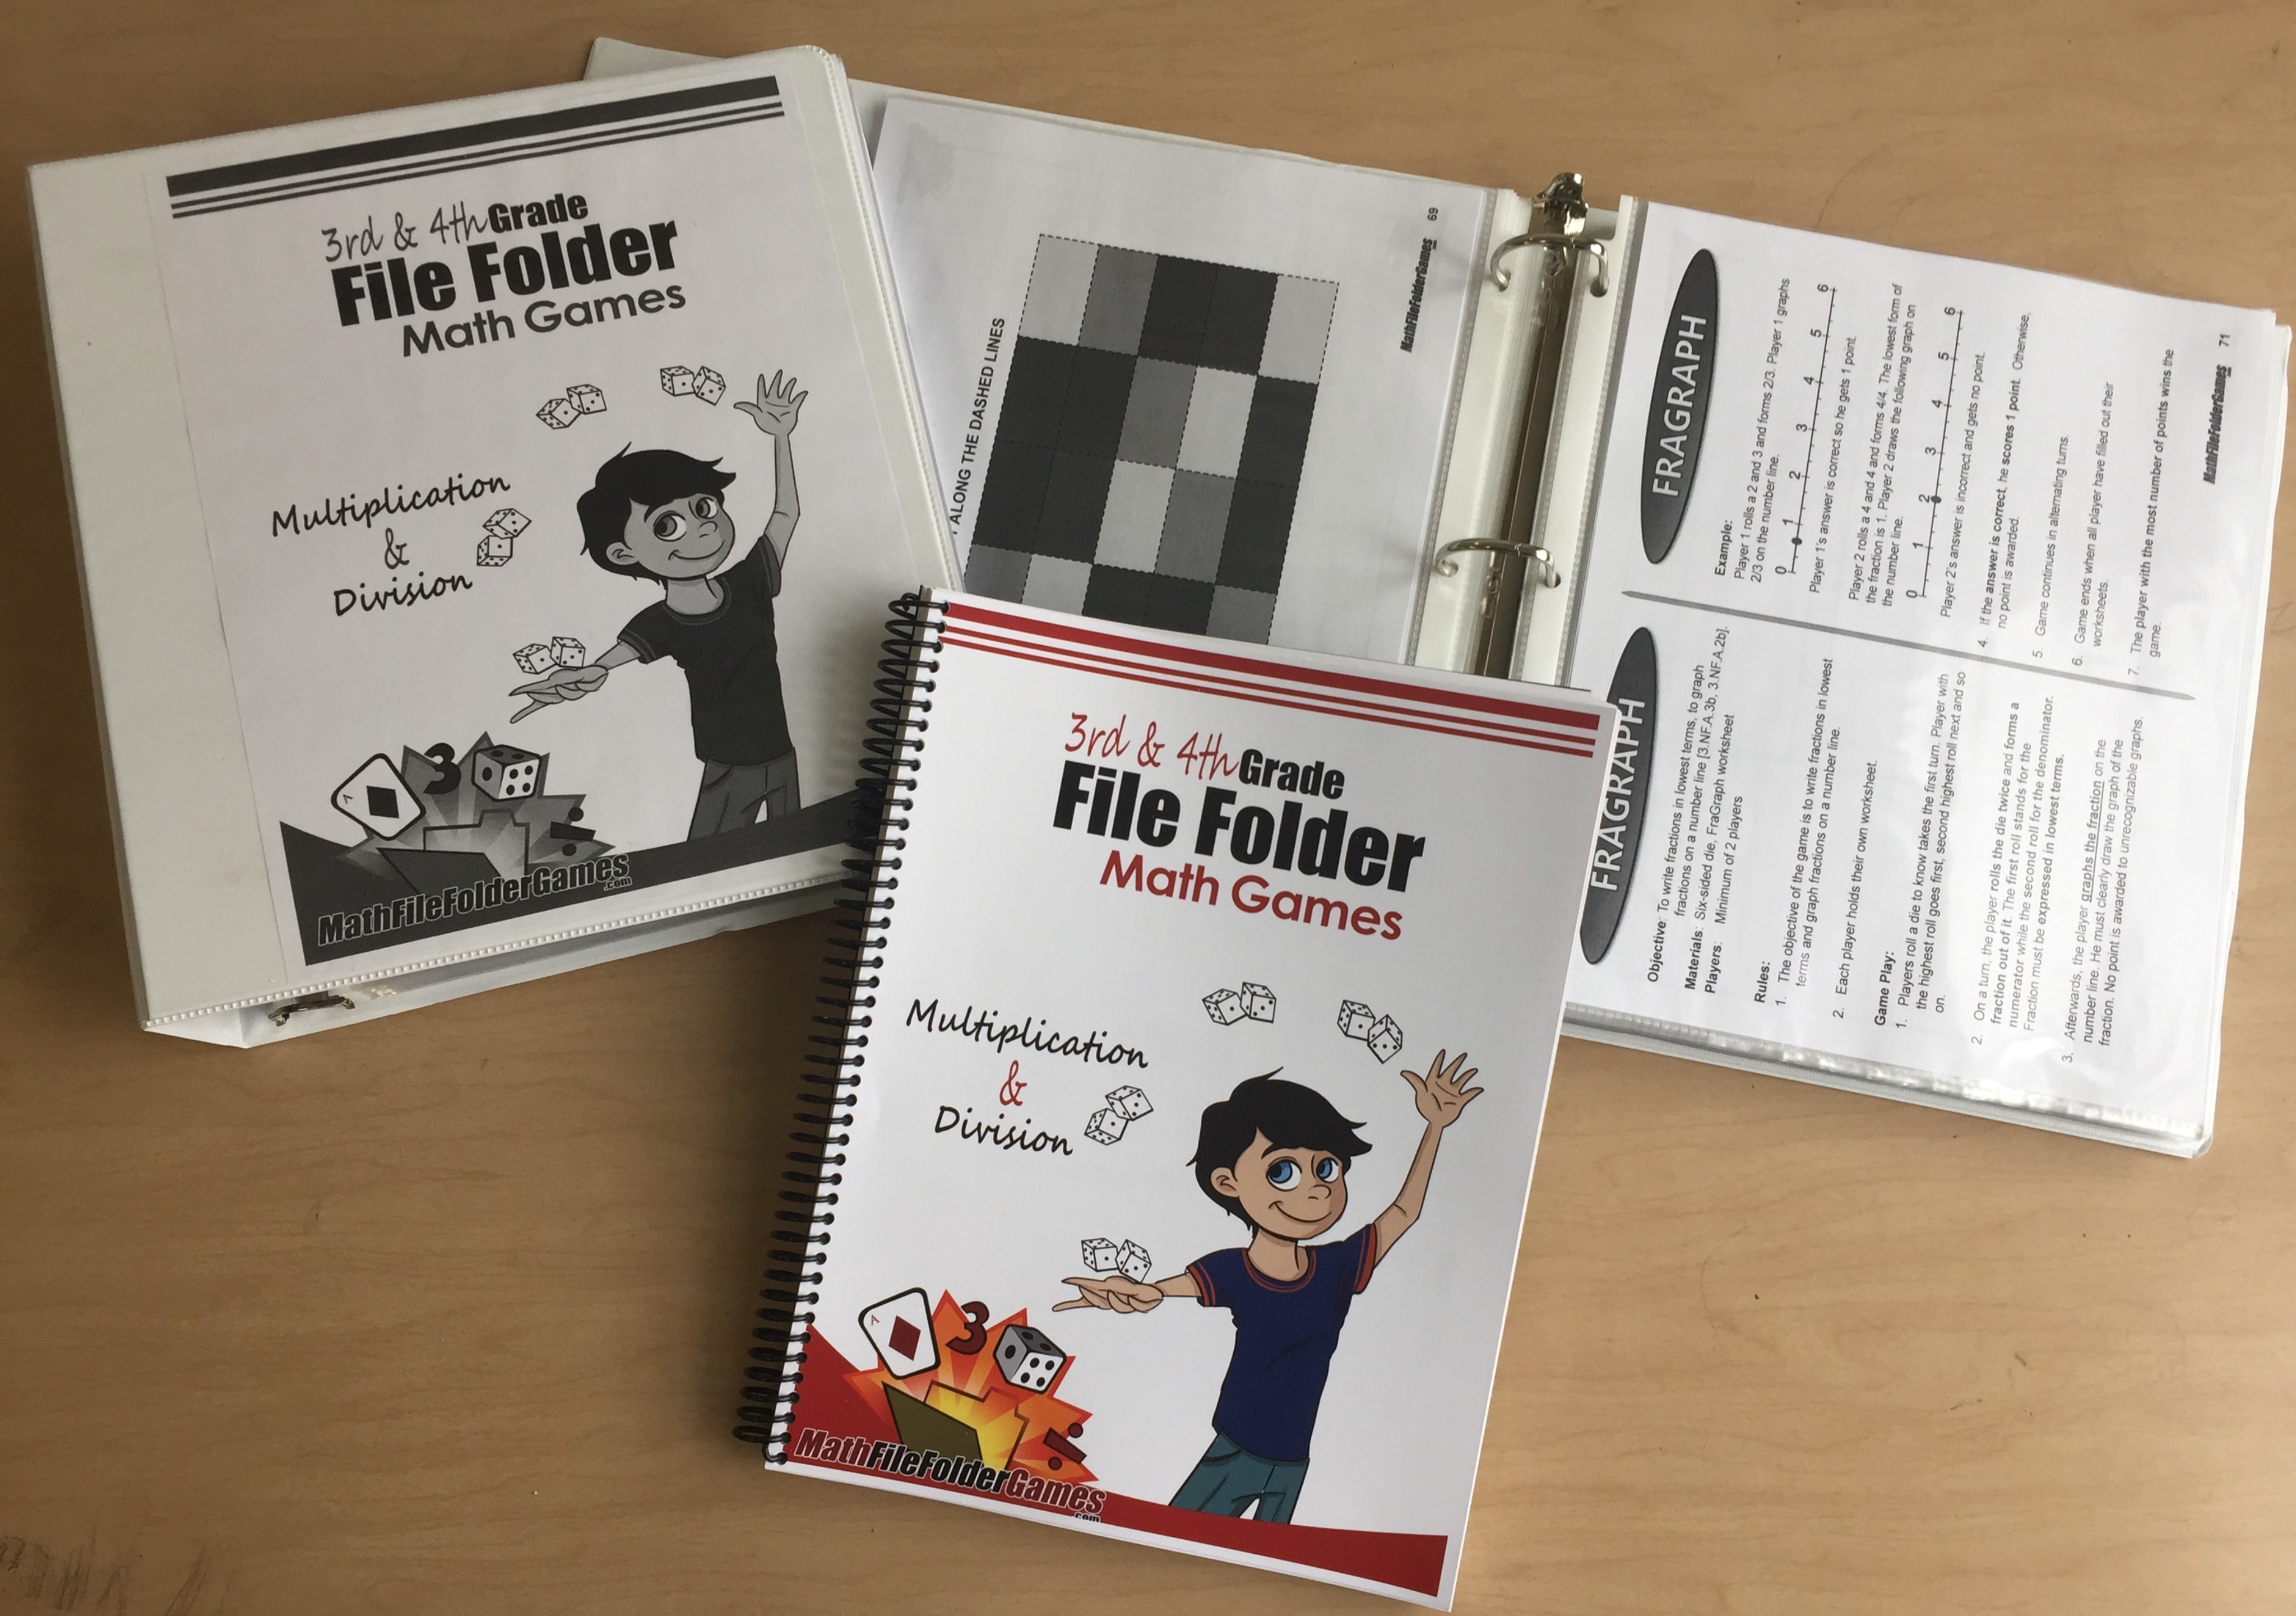 3rd & 4th Grade File Folder Math Games (Physical Product)